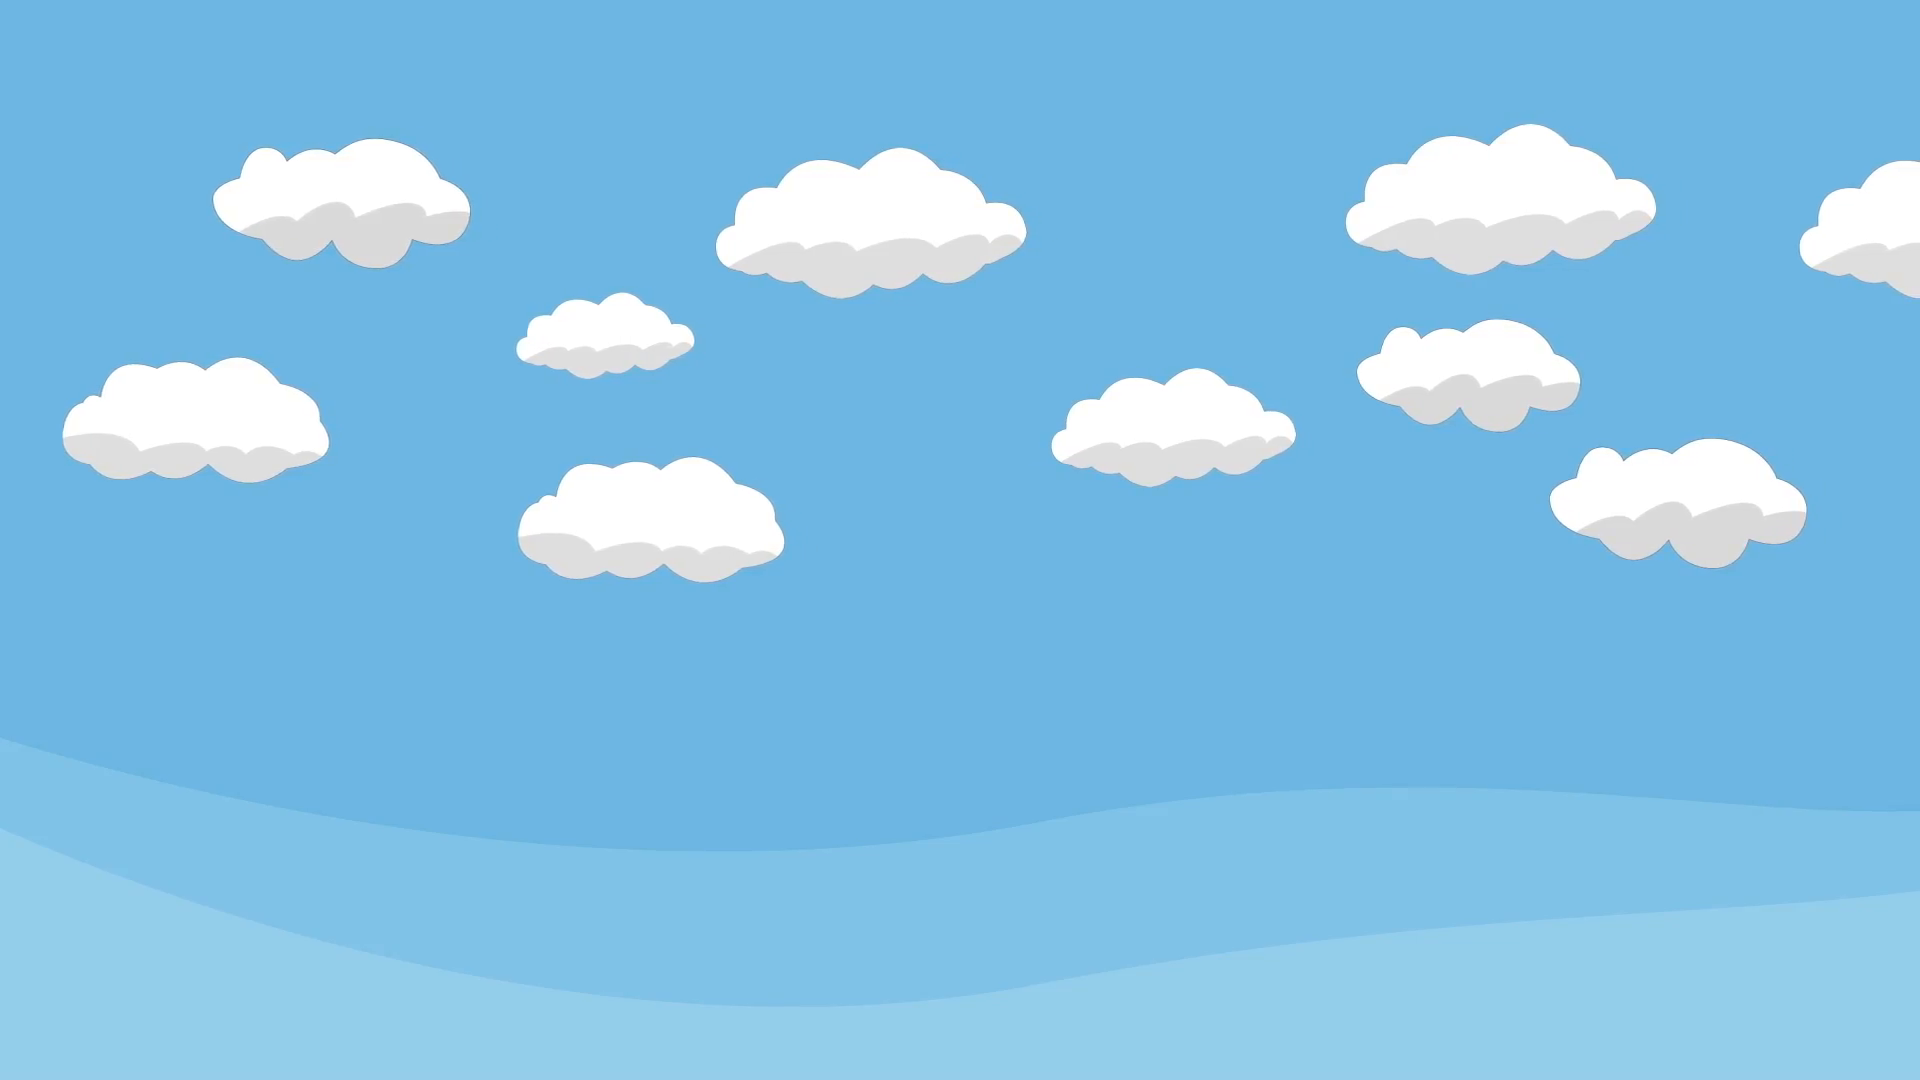 Cartoon Clouds Wallpapers High Quality Download Free